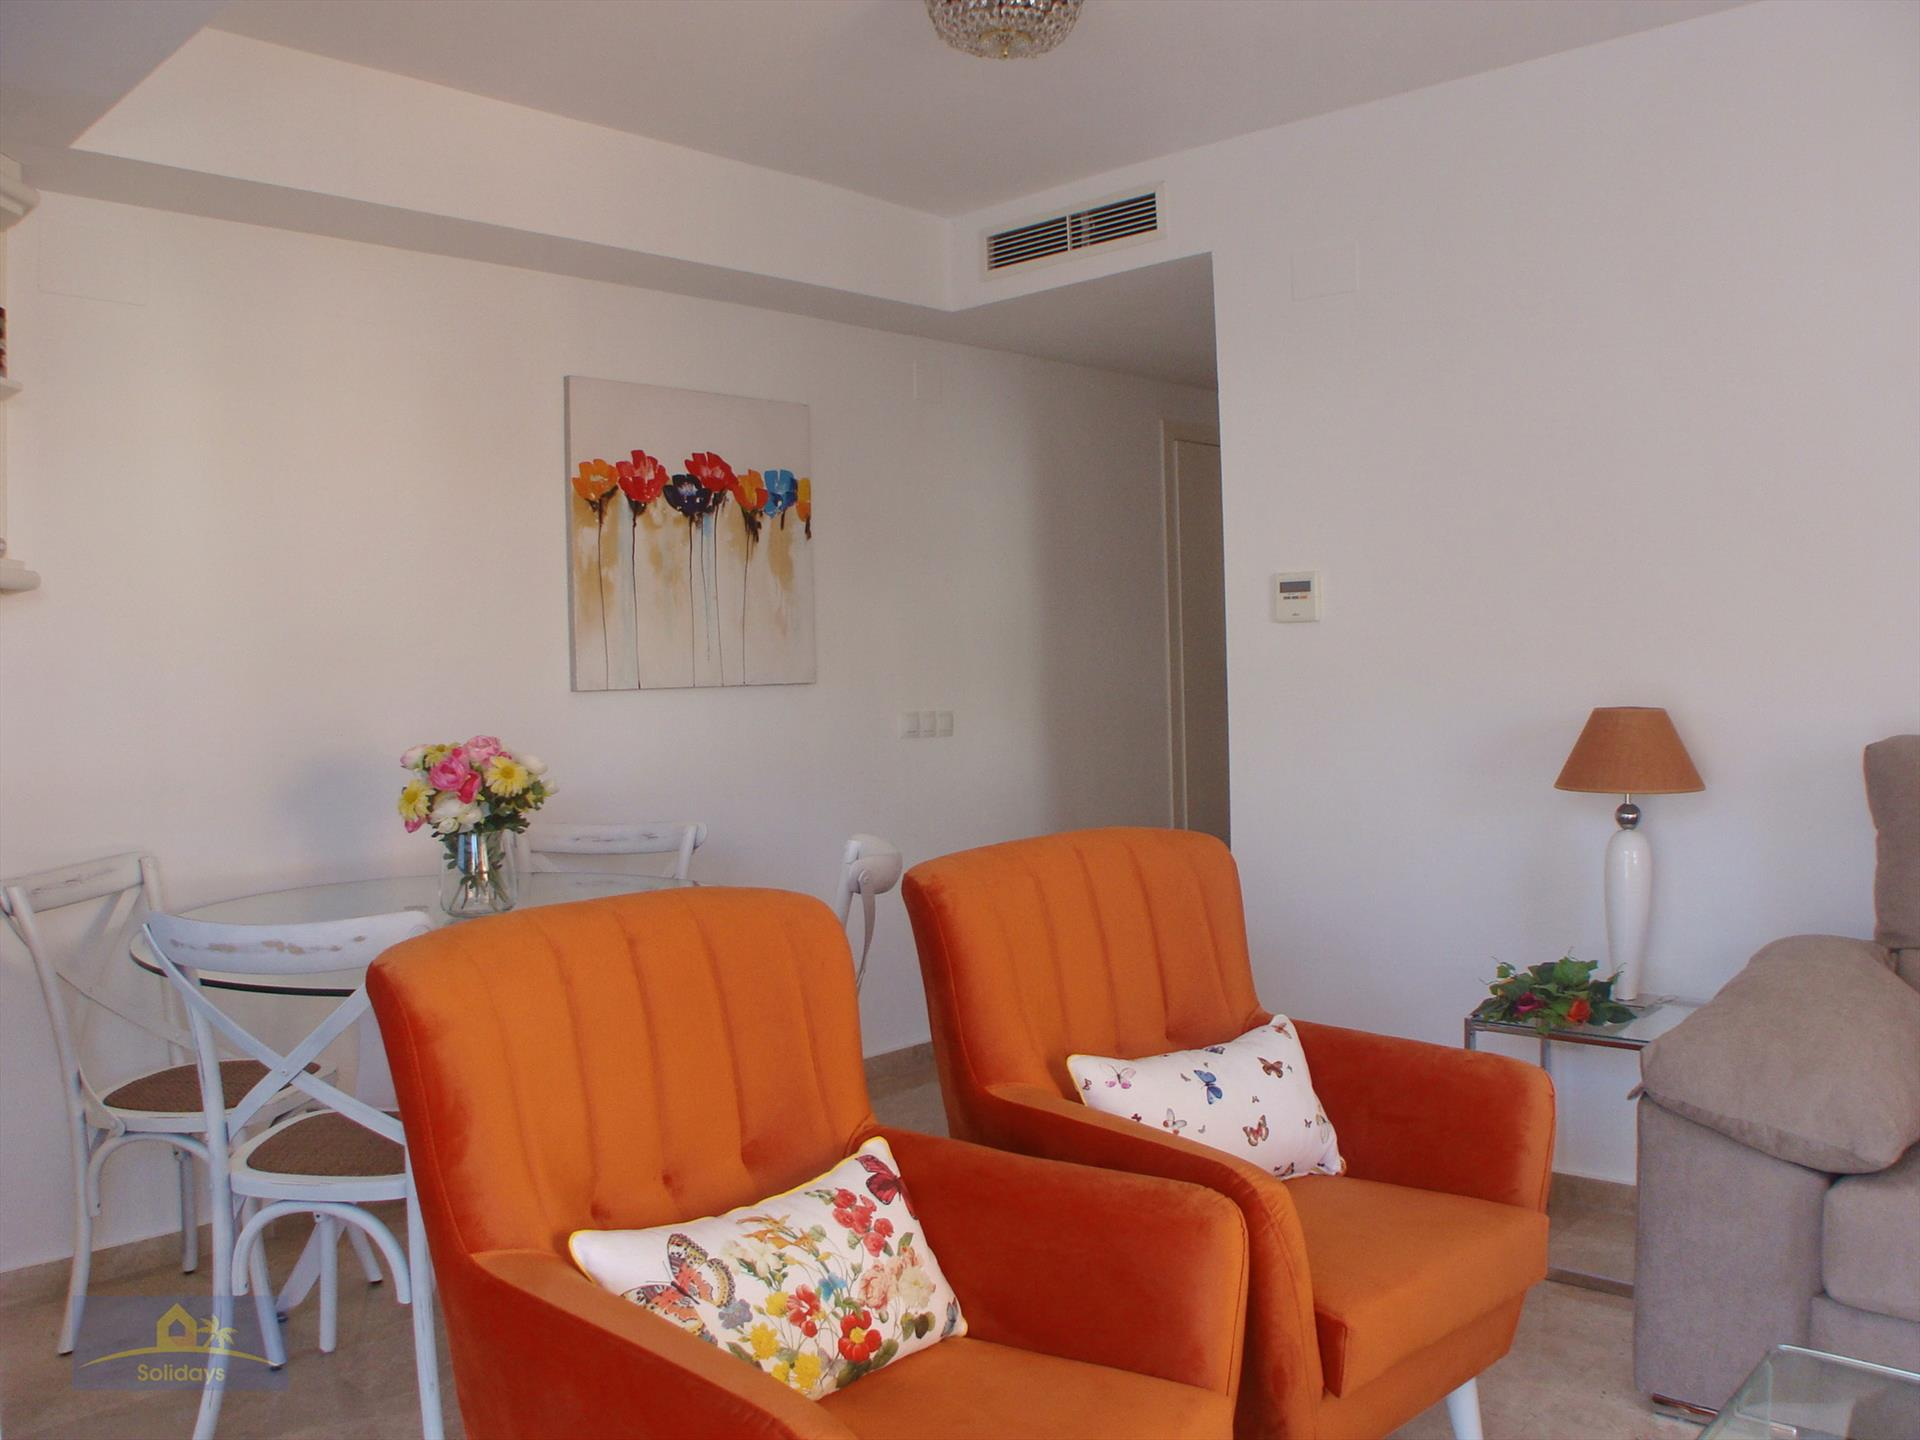 Mar y Sol Solidays Moraira,Comfortable apartment in Moraira, on the Costa Blanca, Spain for 4 persons.....